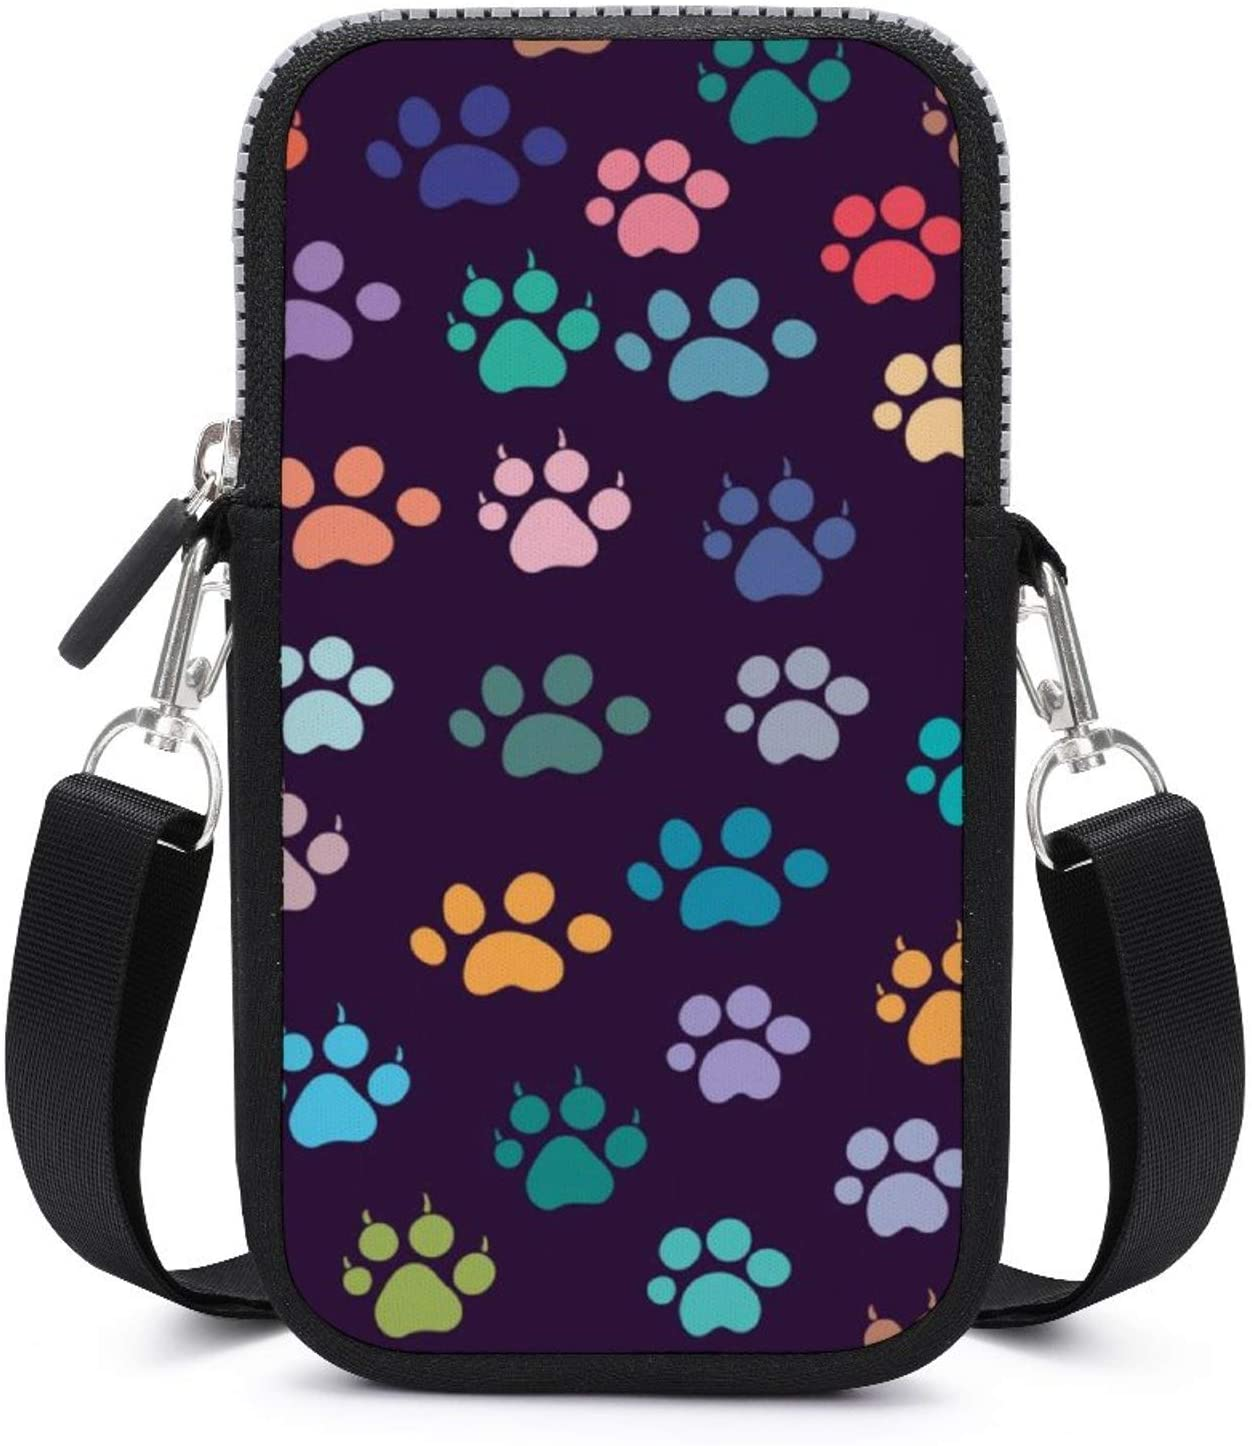 NiYoung Fashion Cell Phone Purse for Women and Girls - Small Crossbody Bag Shoulder Bag (Animals Footprint Paw Print Pattern)